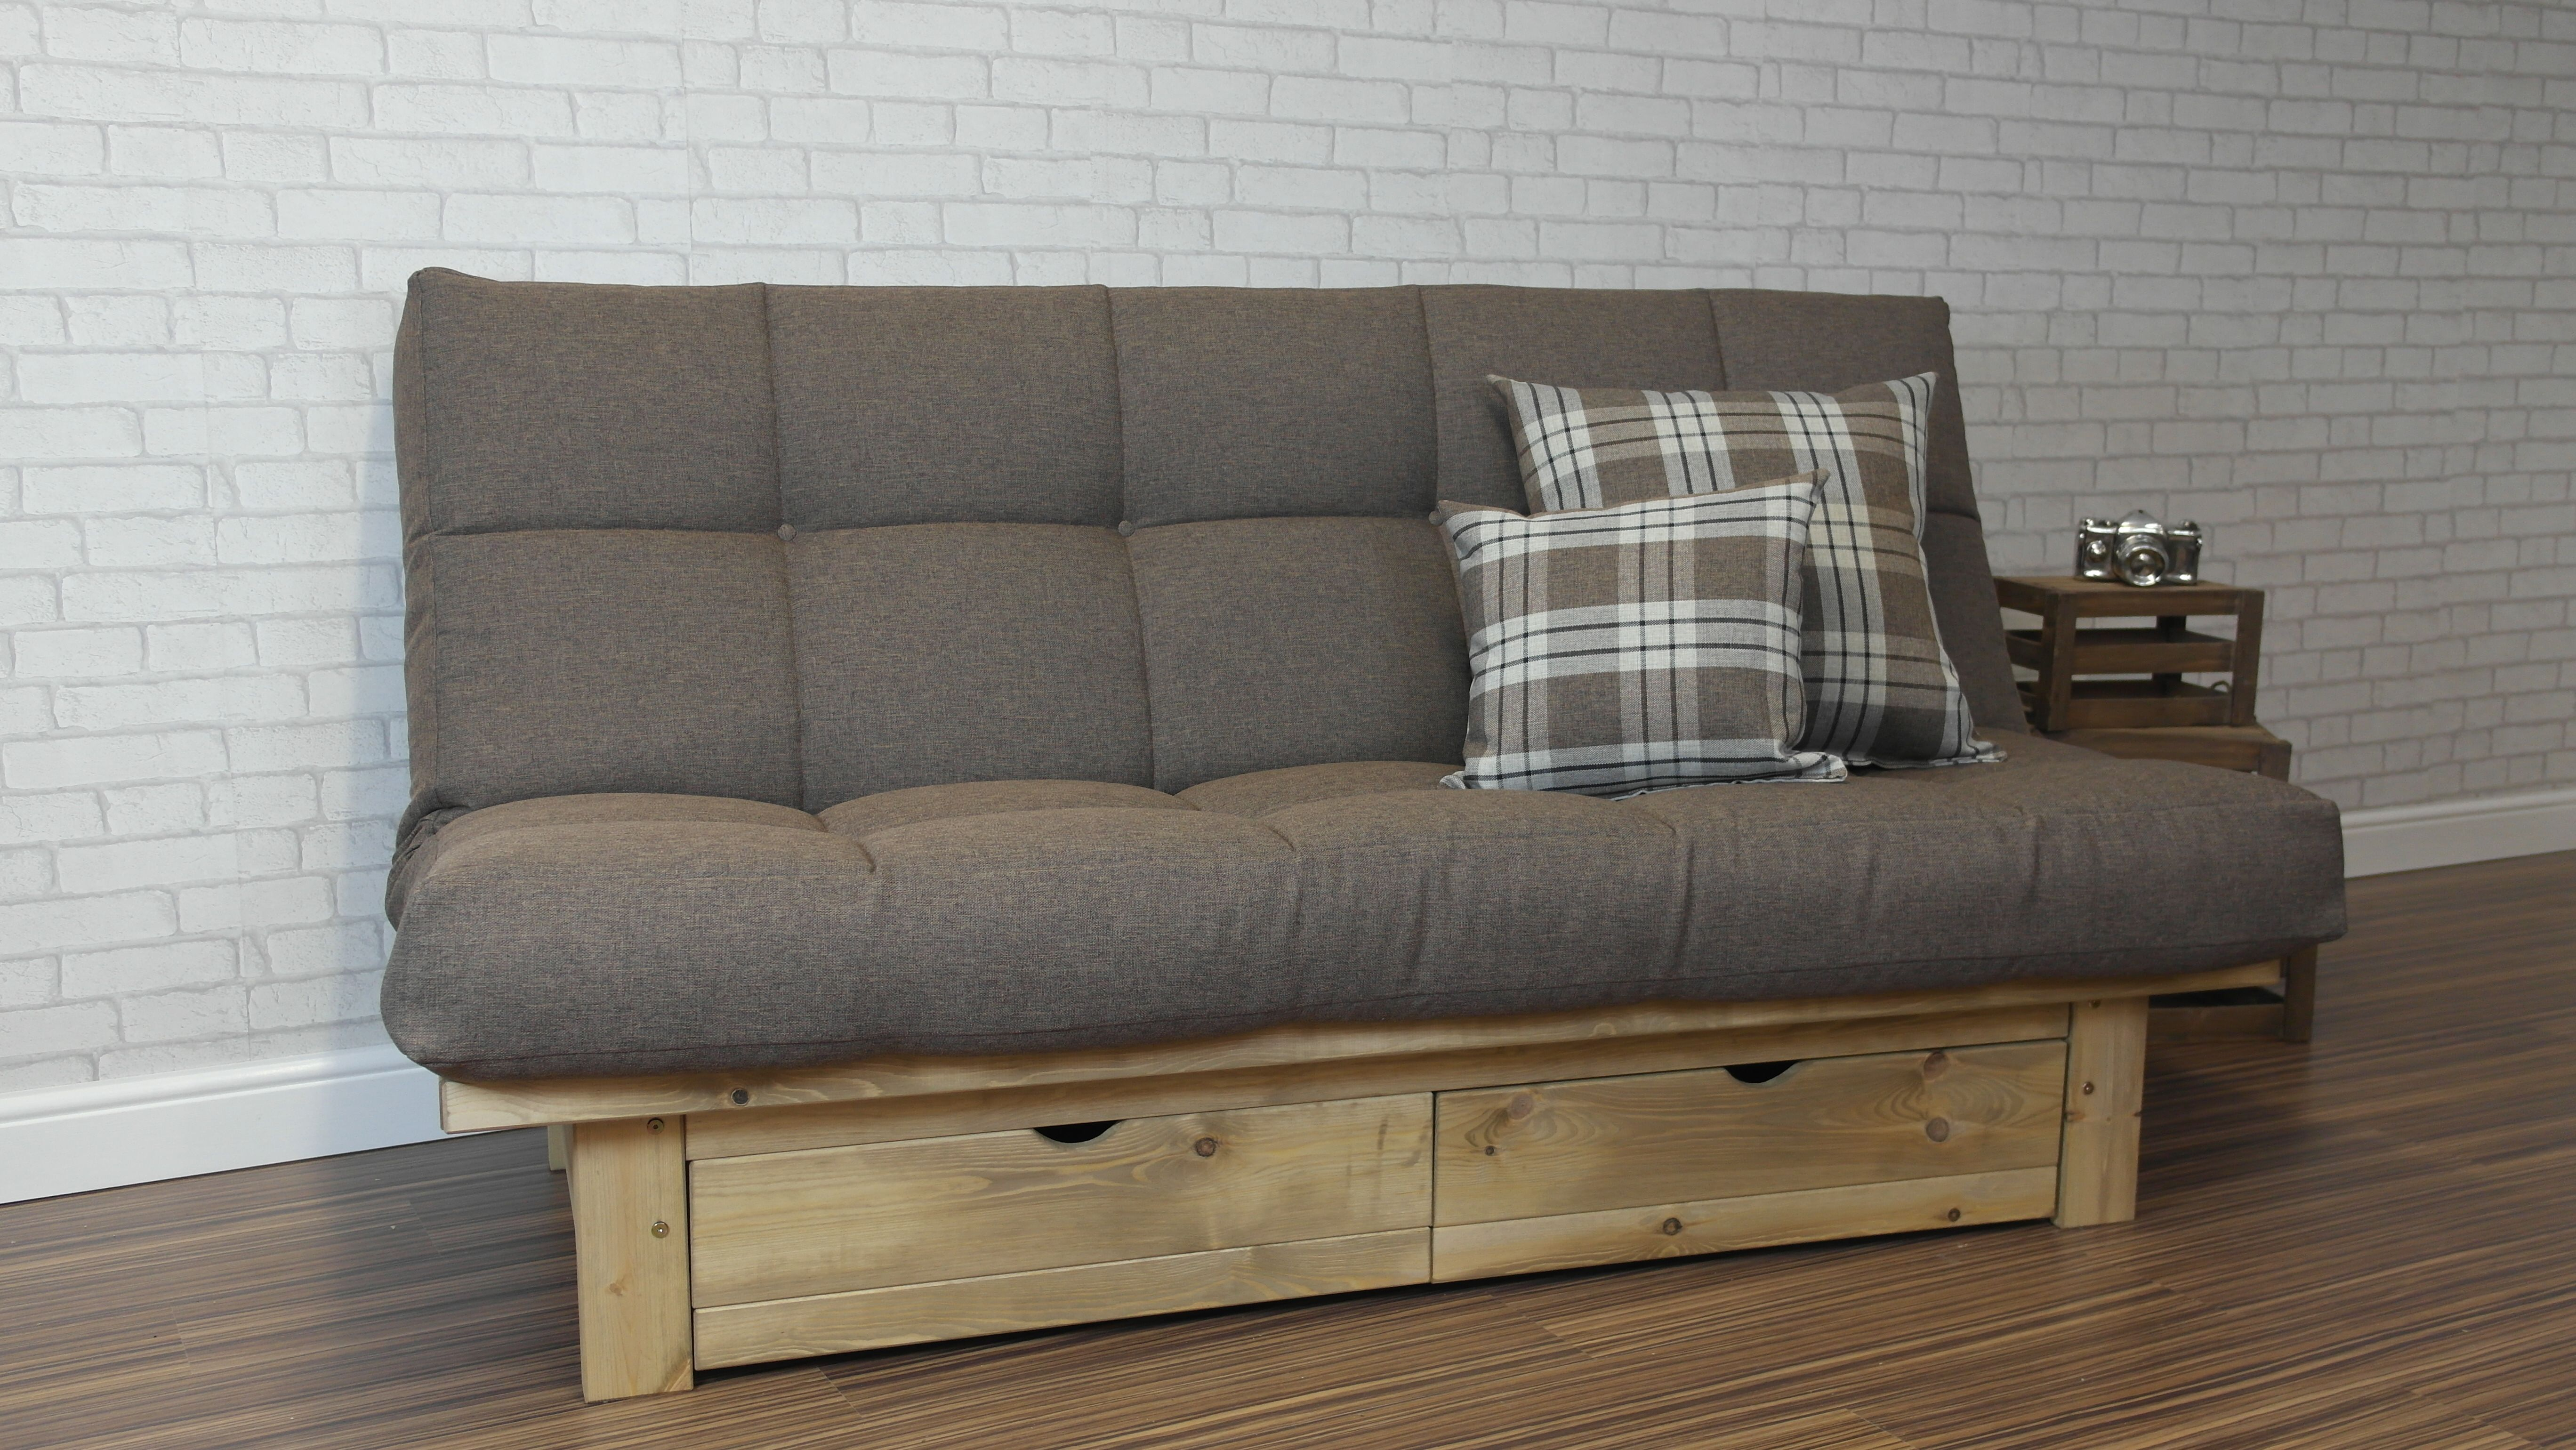 and nz design futon free bunk ideas art pact wood futons unique best beds of expressions double bed sofa lovely starta